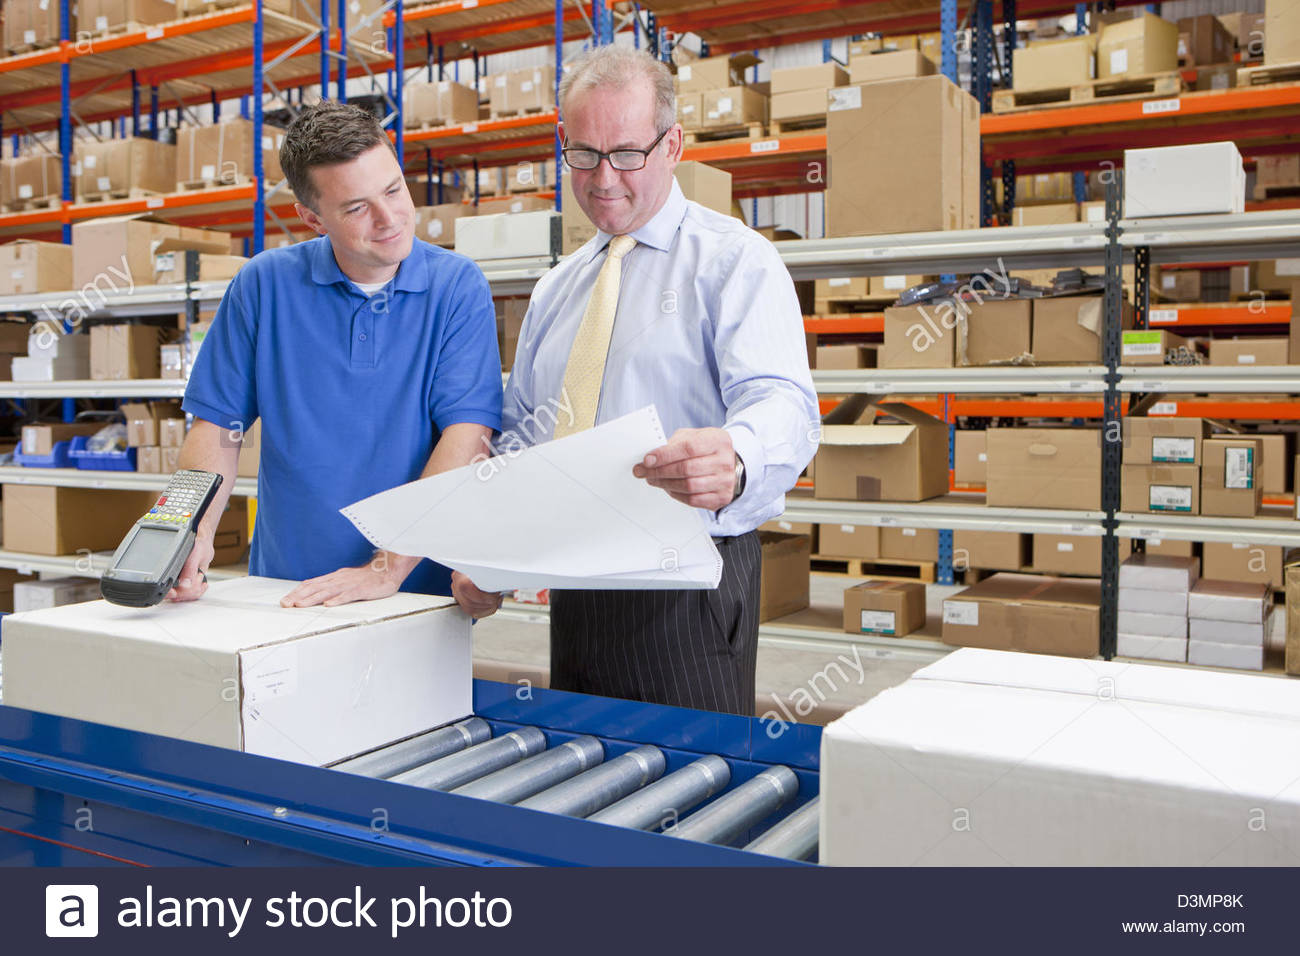 Supervisor and worker examining paperwork and scanning boxes on production line in distribution warehouse - Stock Image